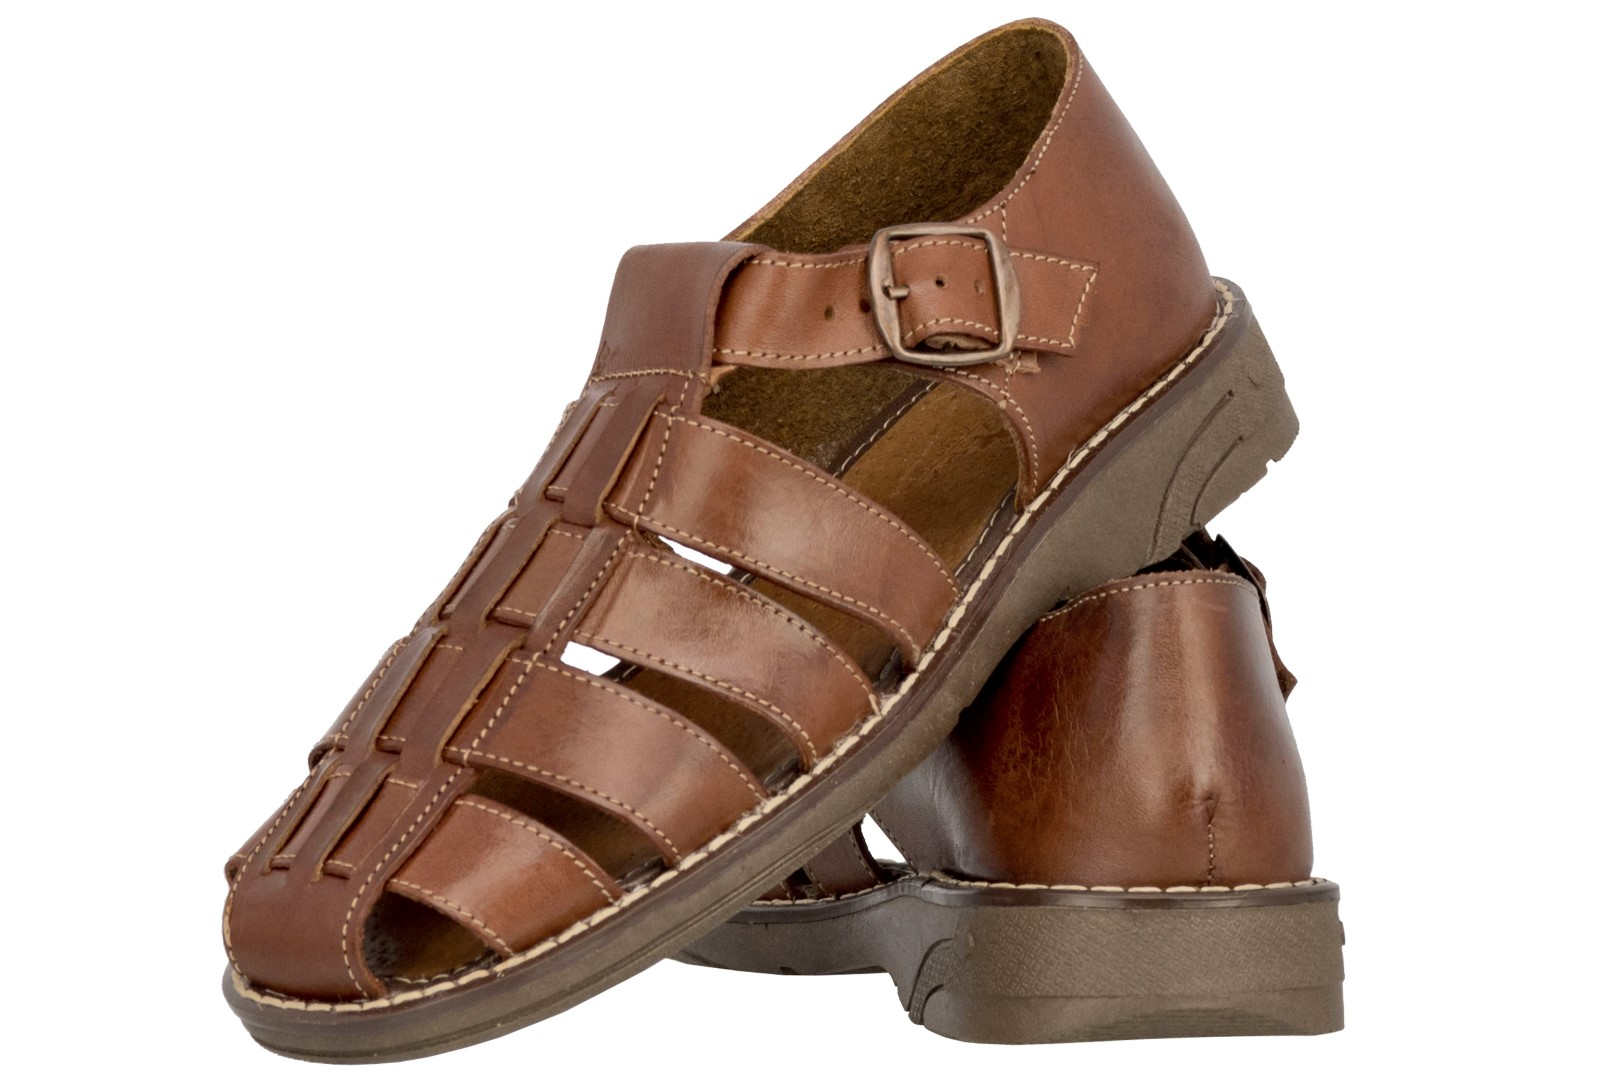 5e0c531f010 Mens Genuine Cognac Brown Leather Mexican Huaraches Buckle Sandals ...